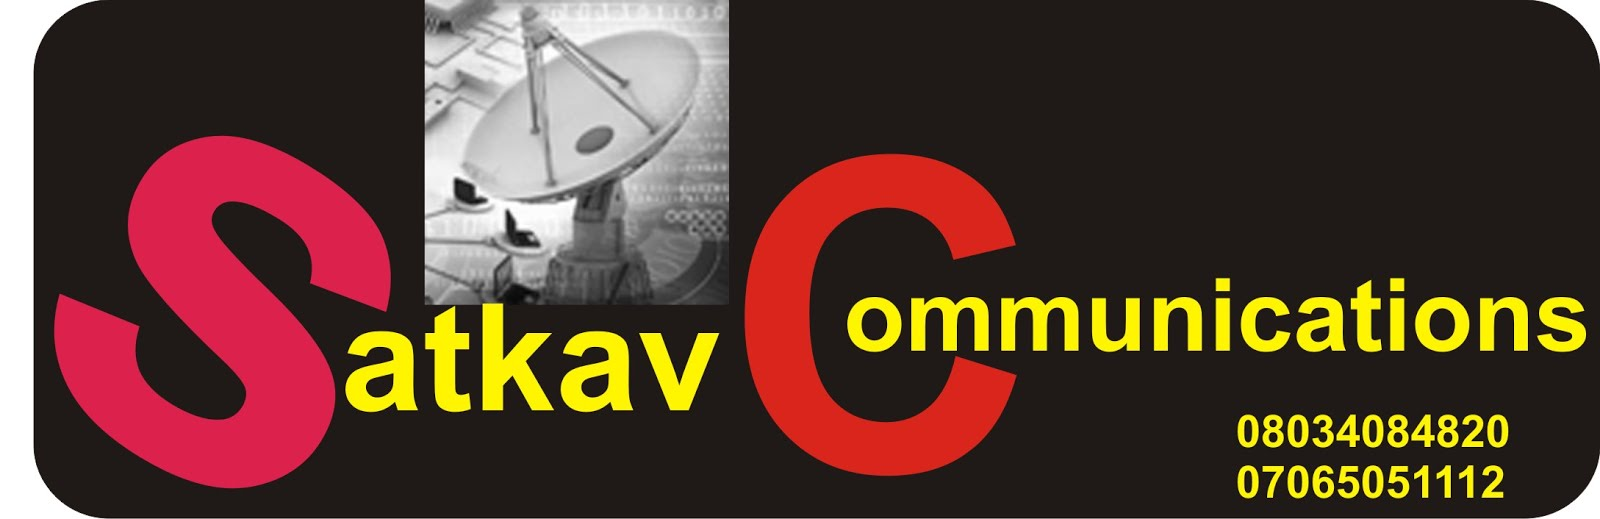 WELCOME TO SATKAV COMMUNICATIONS